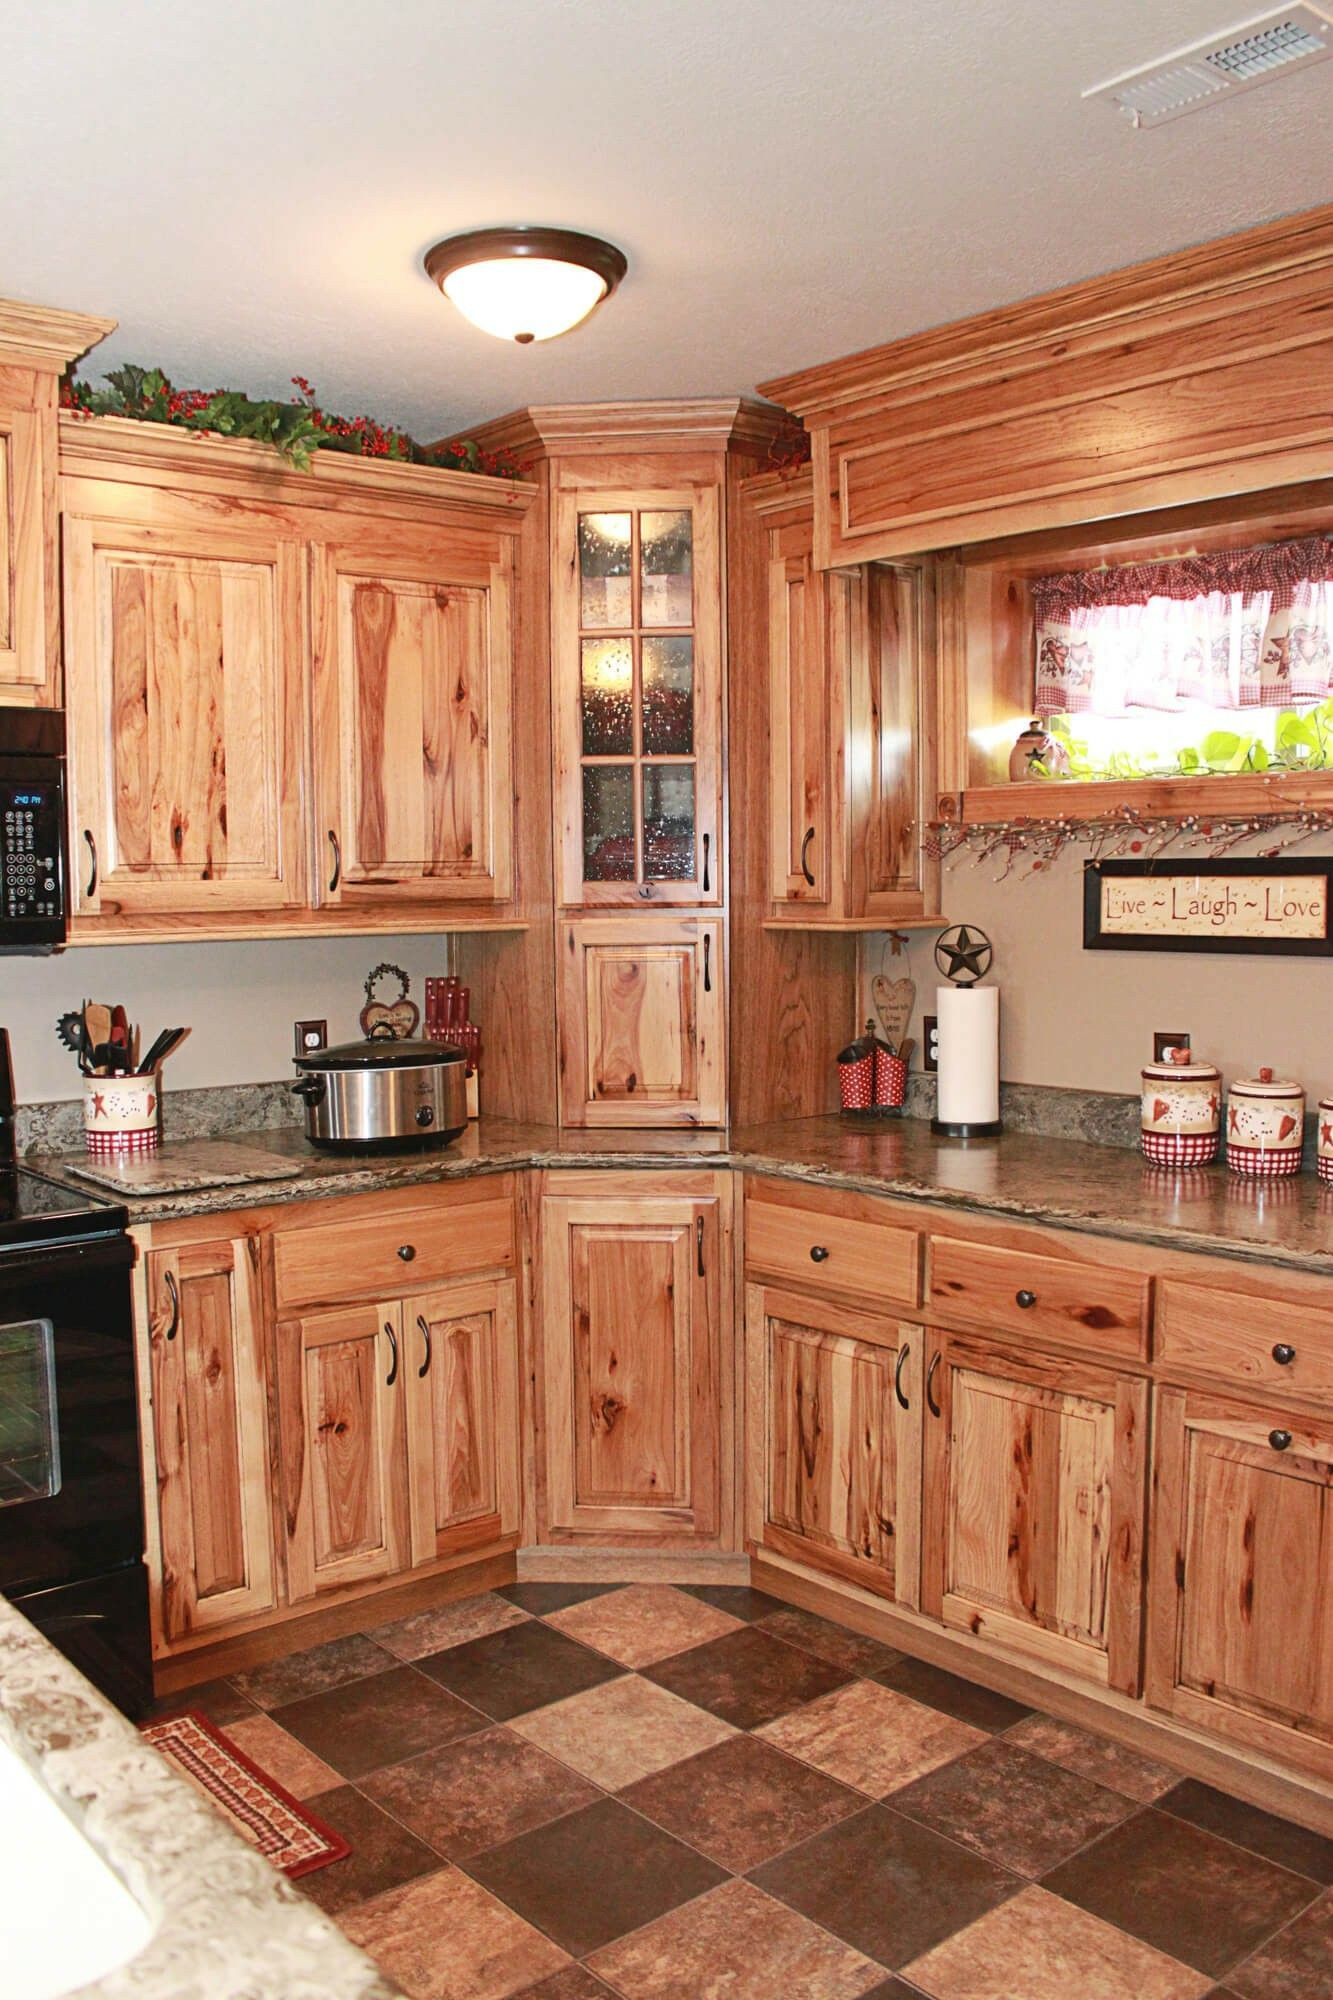 Best 15 Best Rustic Kitchen Cabinet Ideas And Design Gallery 400 x 300